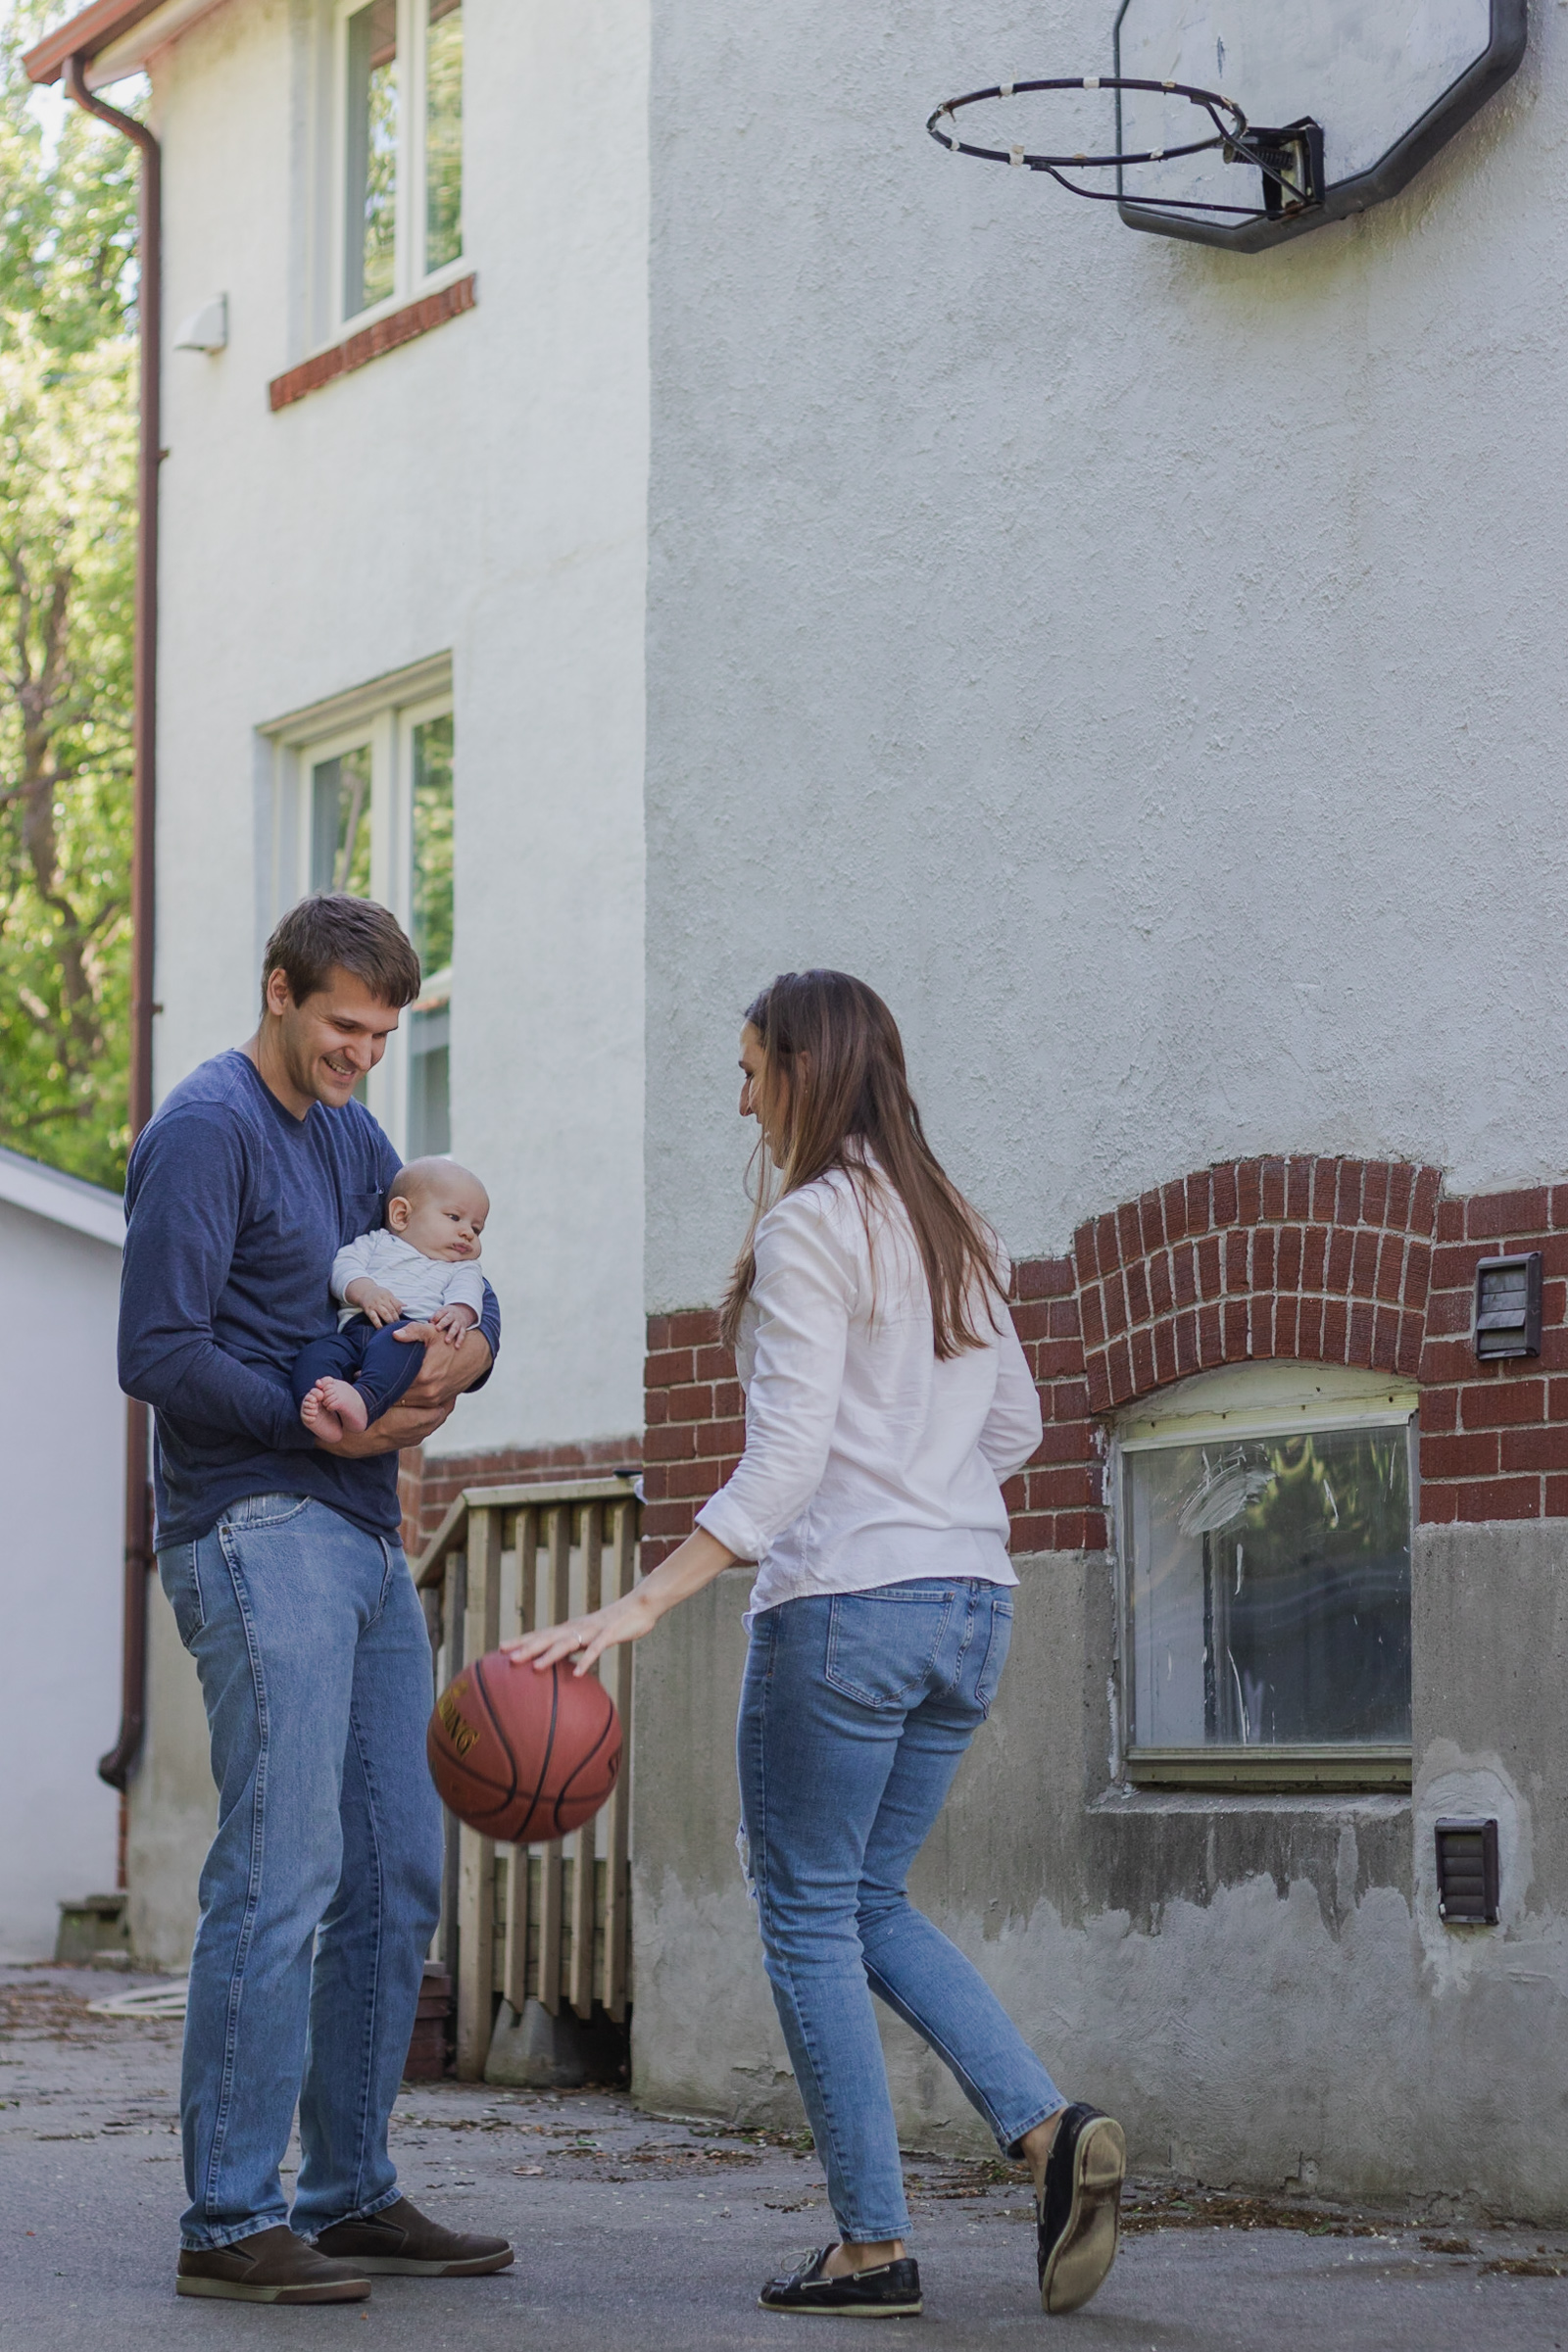 young family playing basketball together in their front yard